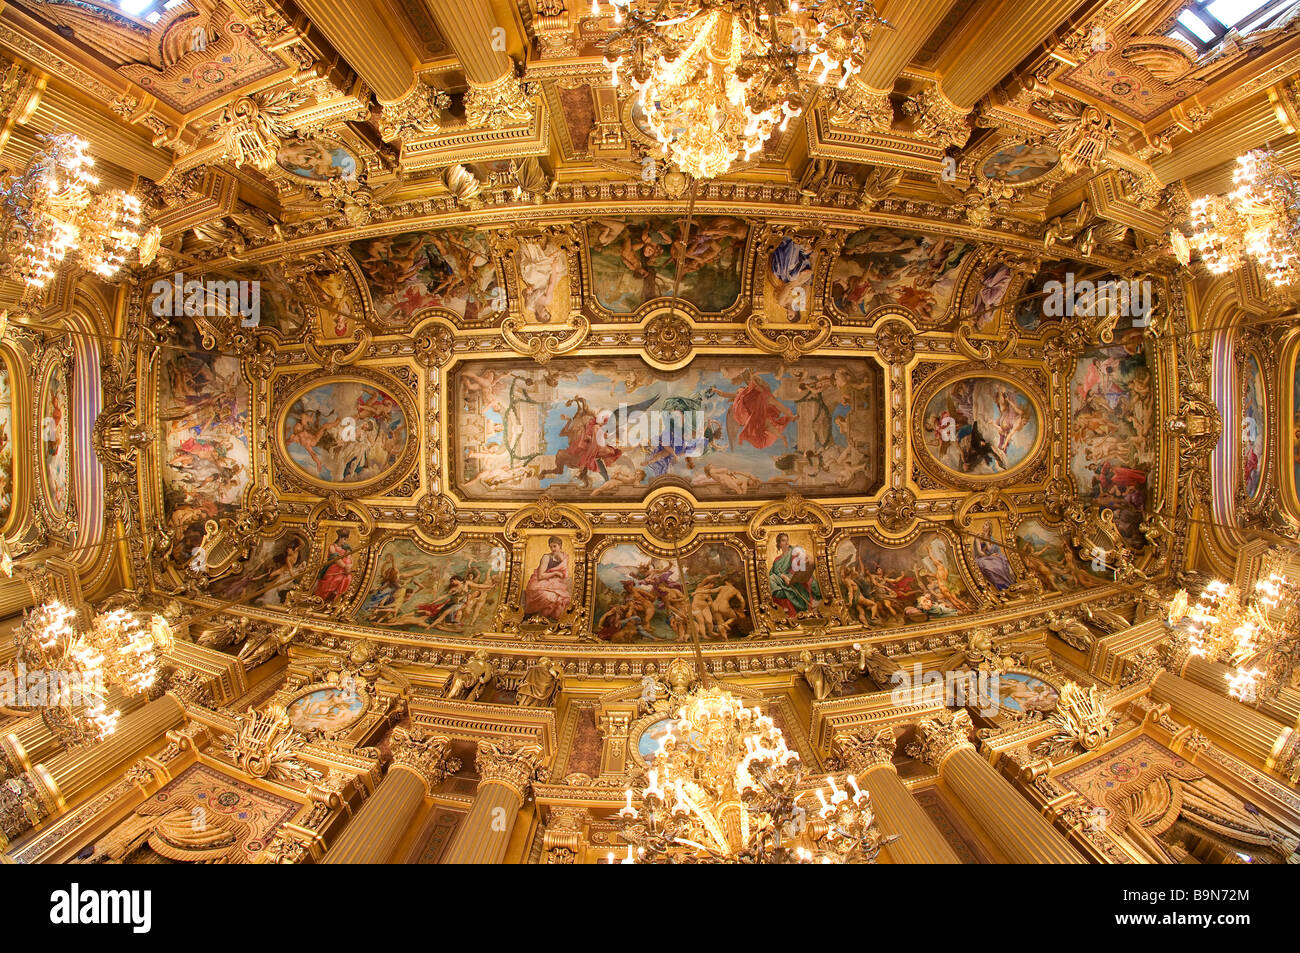 France, Paris, Garnier Opera house, the vault of the main foyer - Stock Image